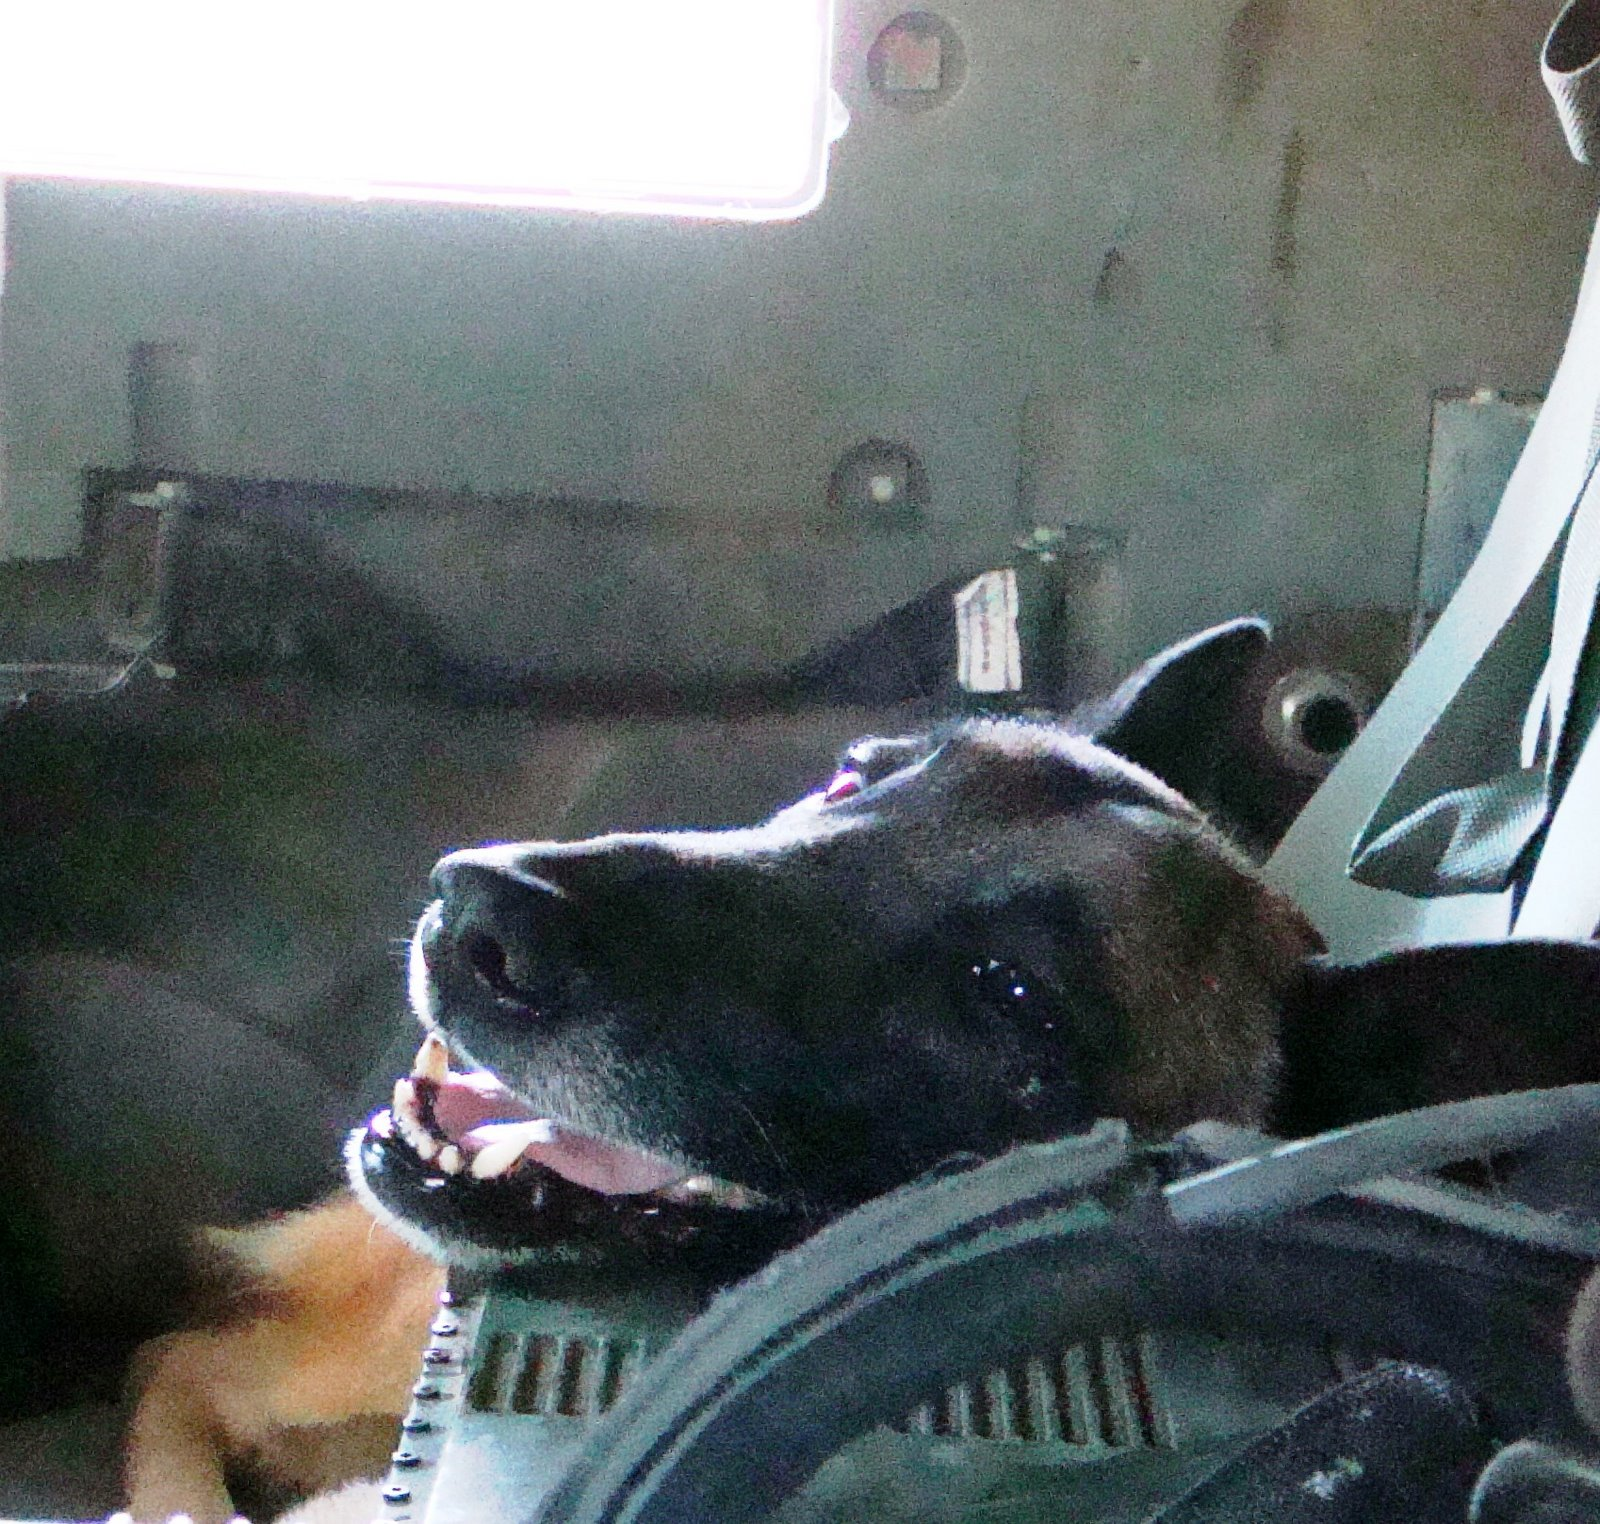 MWD Barry just chilliln' in the air conditioned vehicle